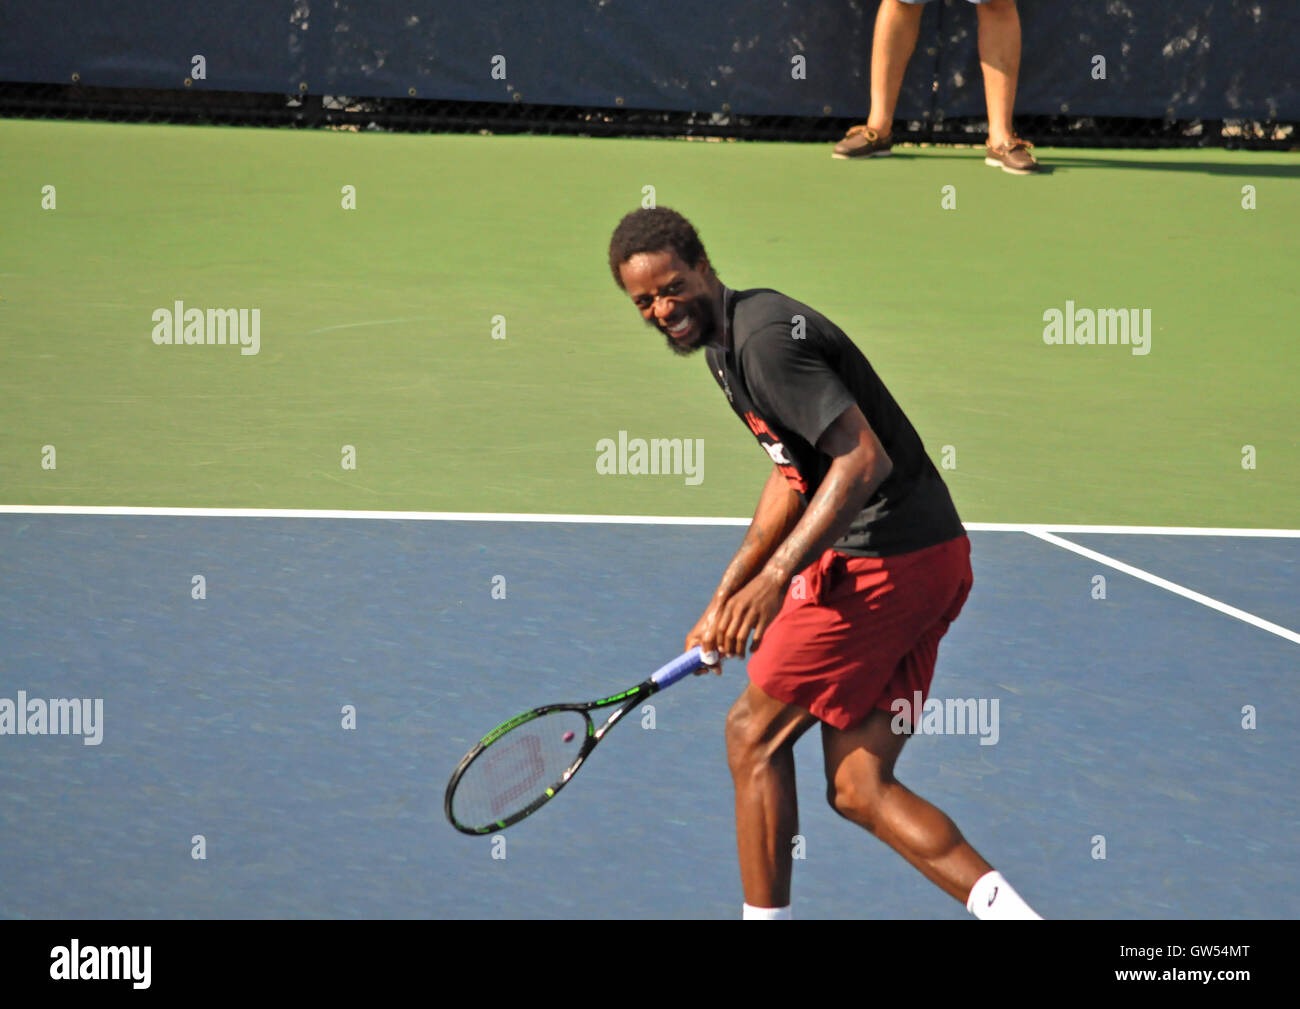 Queens, NY. September 8 2016.  Gael Monfils having fun during his US Open practice session. © Veronica Bruno/Alamy - Stock Image